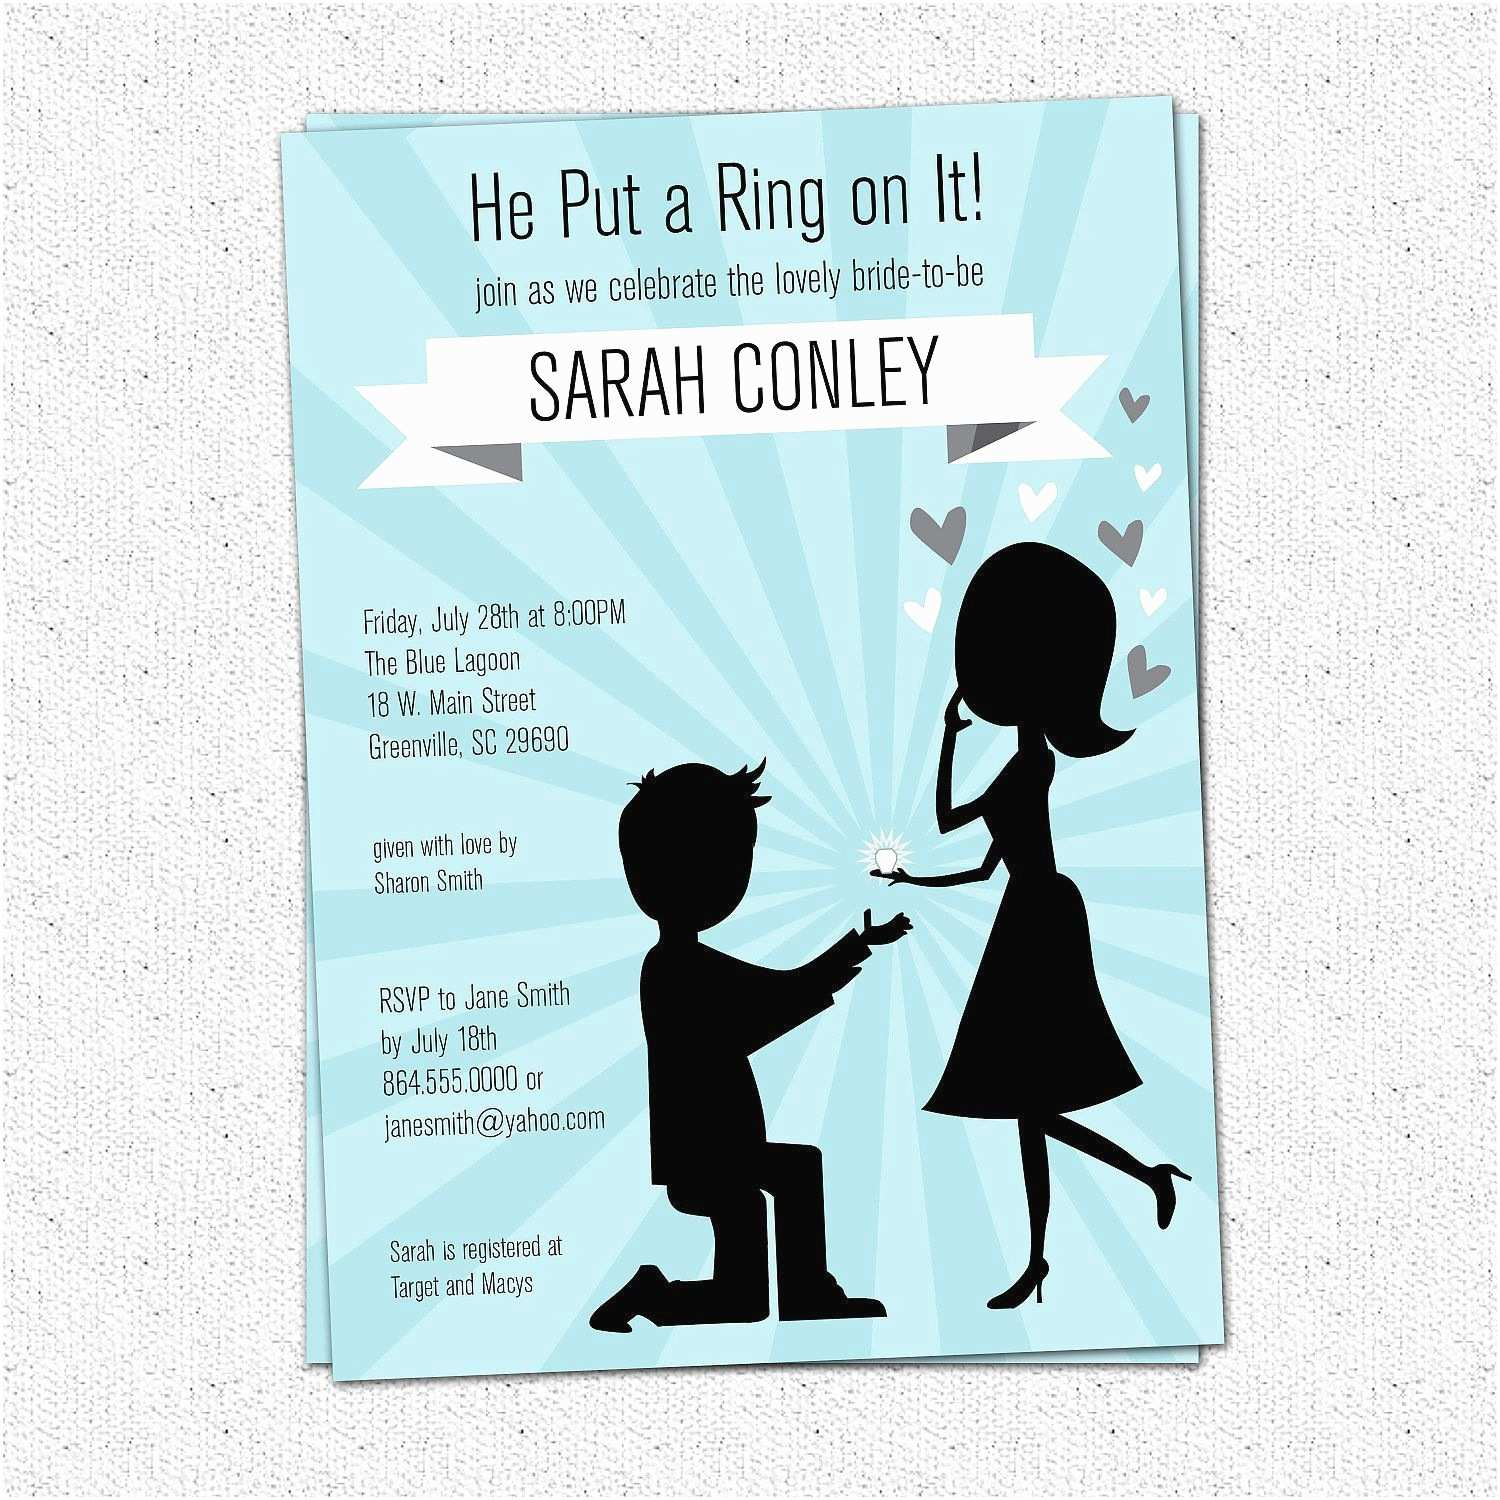 Walmart Wedding Invitations with Pictures Couples Wedding Shower Invitation Wording Wedding Shower